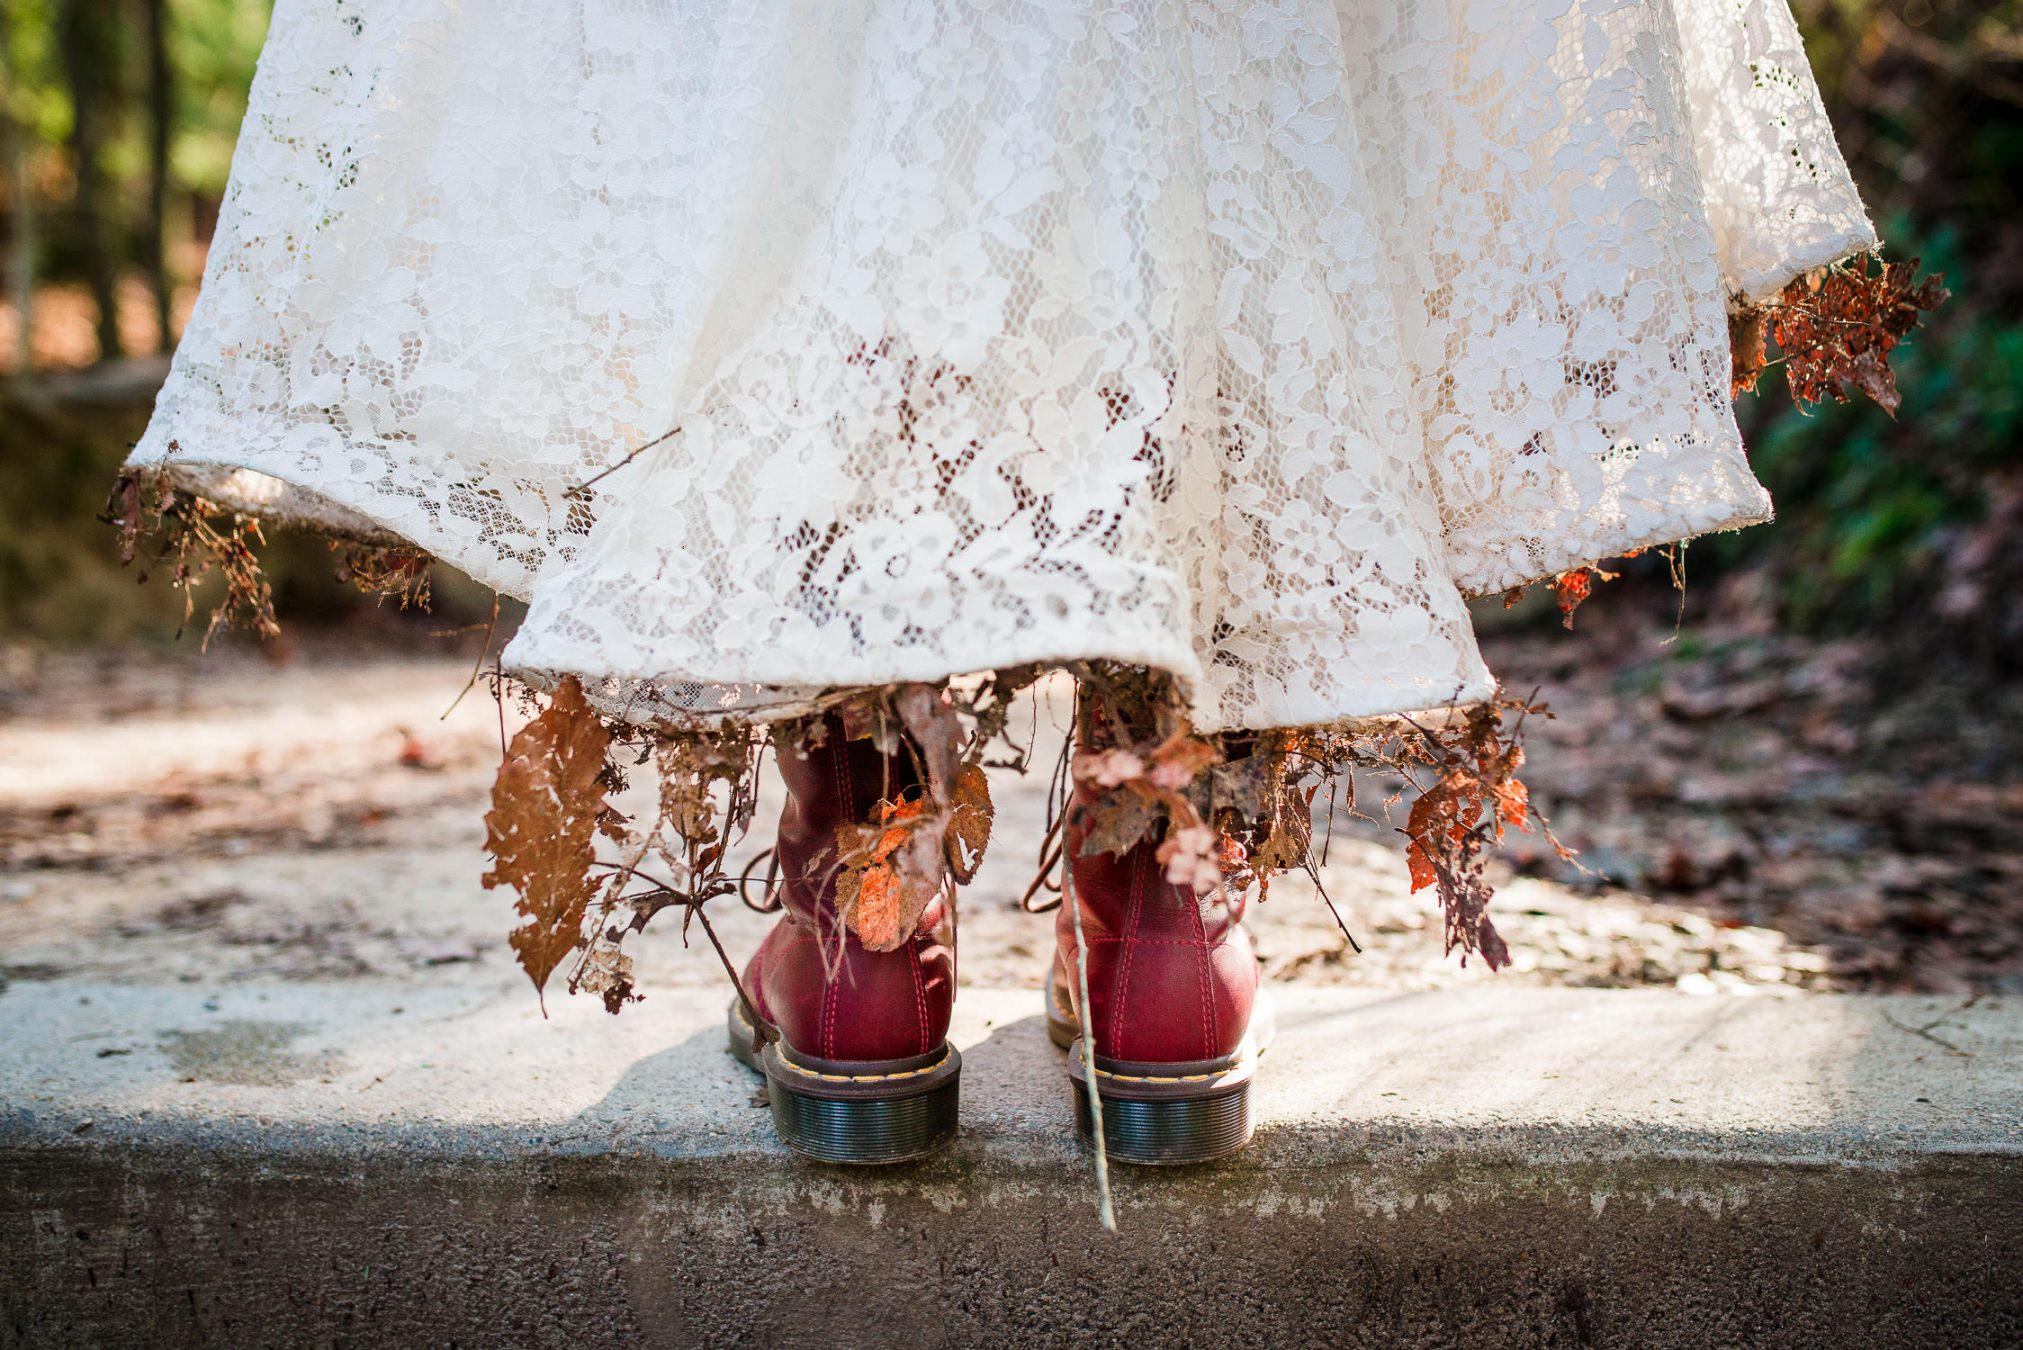 wedding dress with boots and leaves